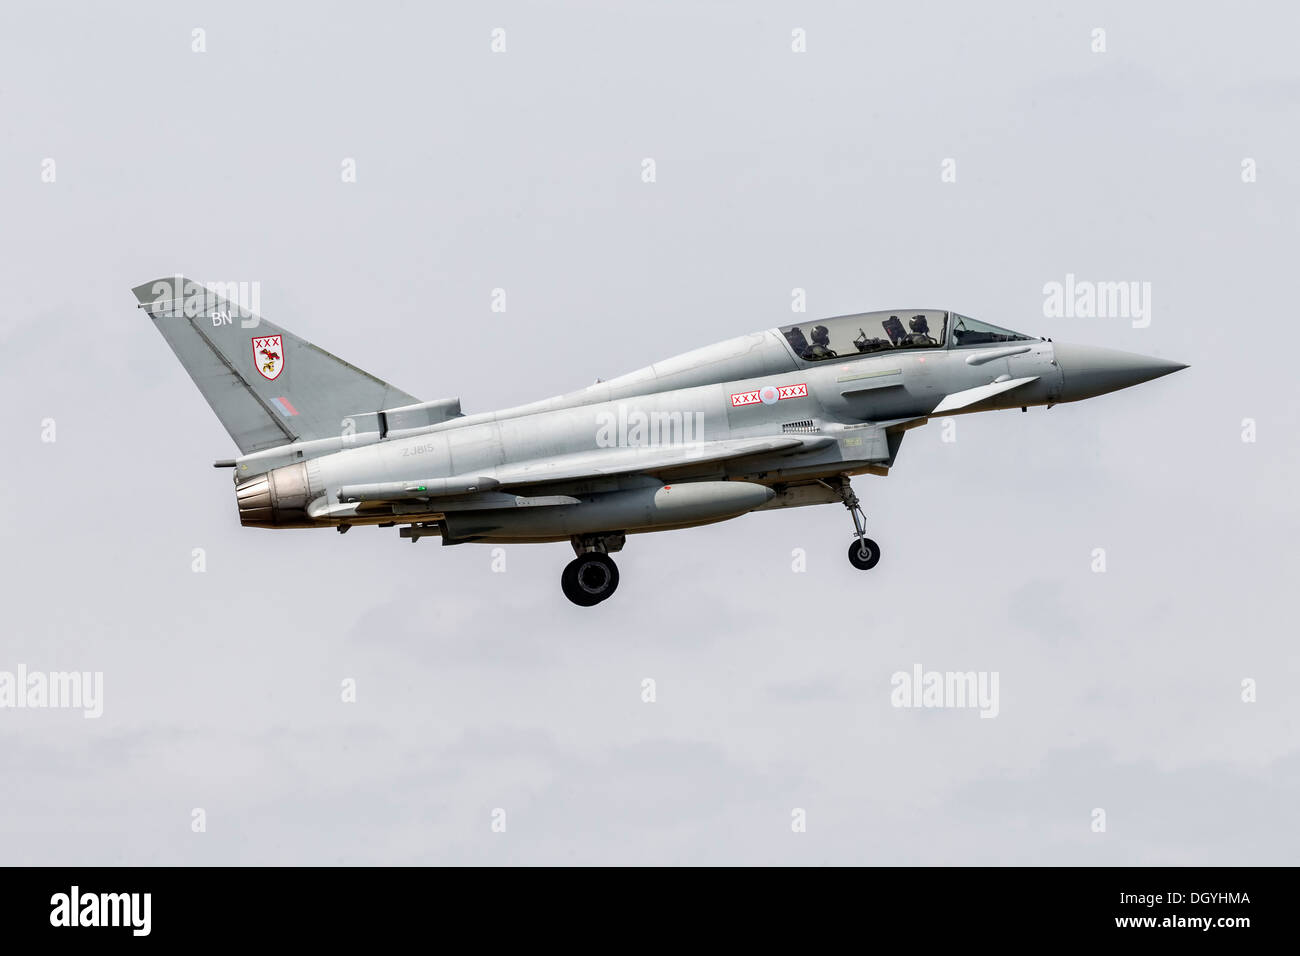 Bae systems Typhoon of the RAF - Stock Image